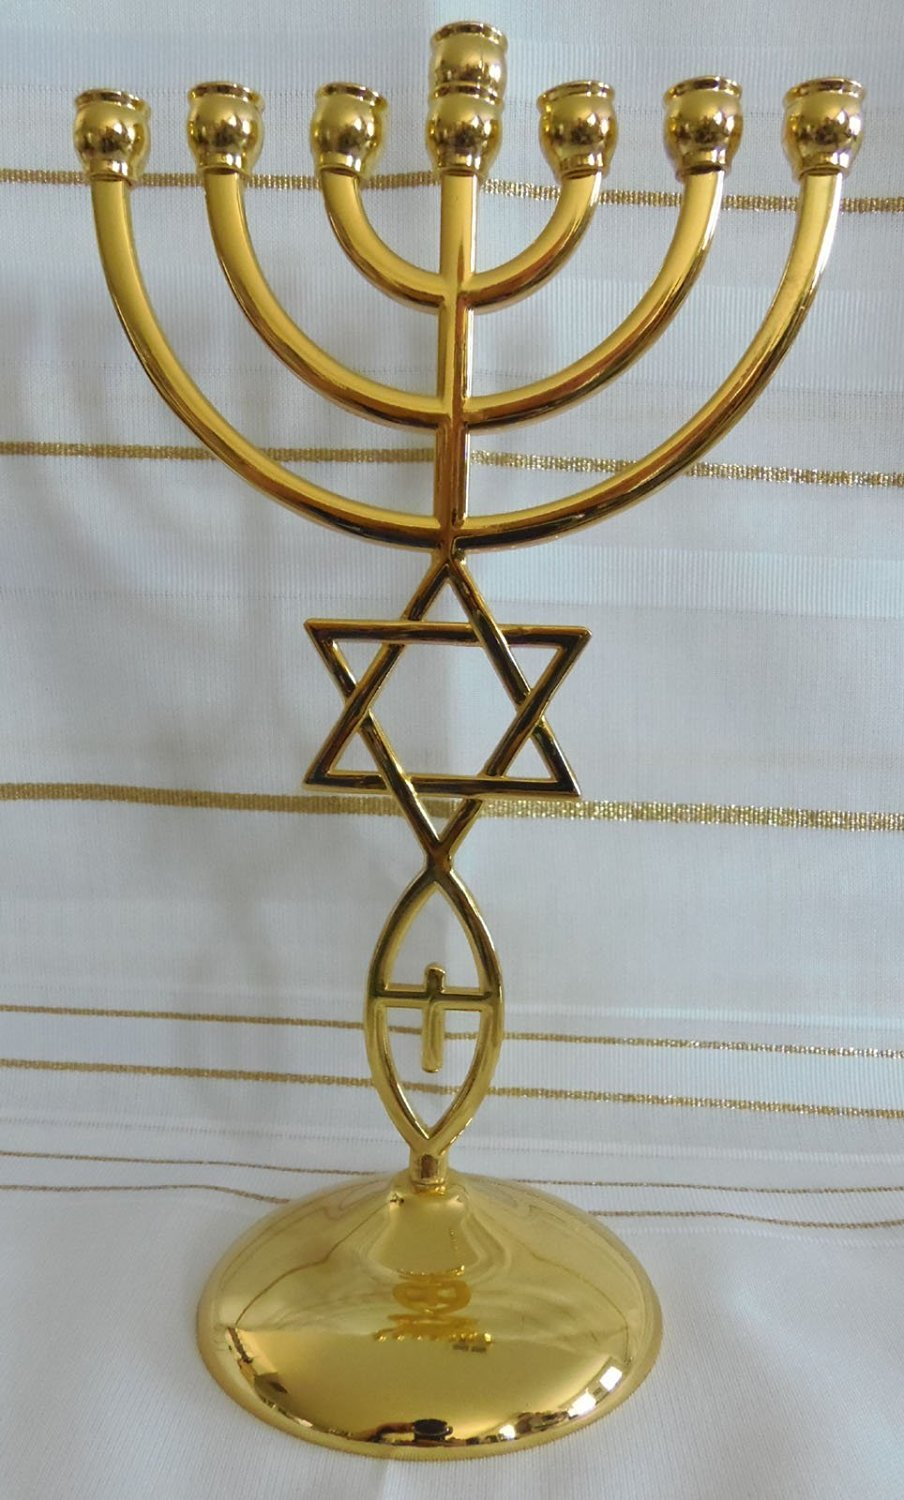 Jewish Messianic Temple Menorah 8.5 inches Tall by Bethlehem Gifts TM (Gold)